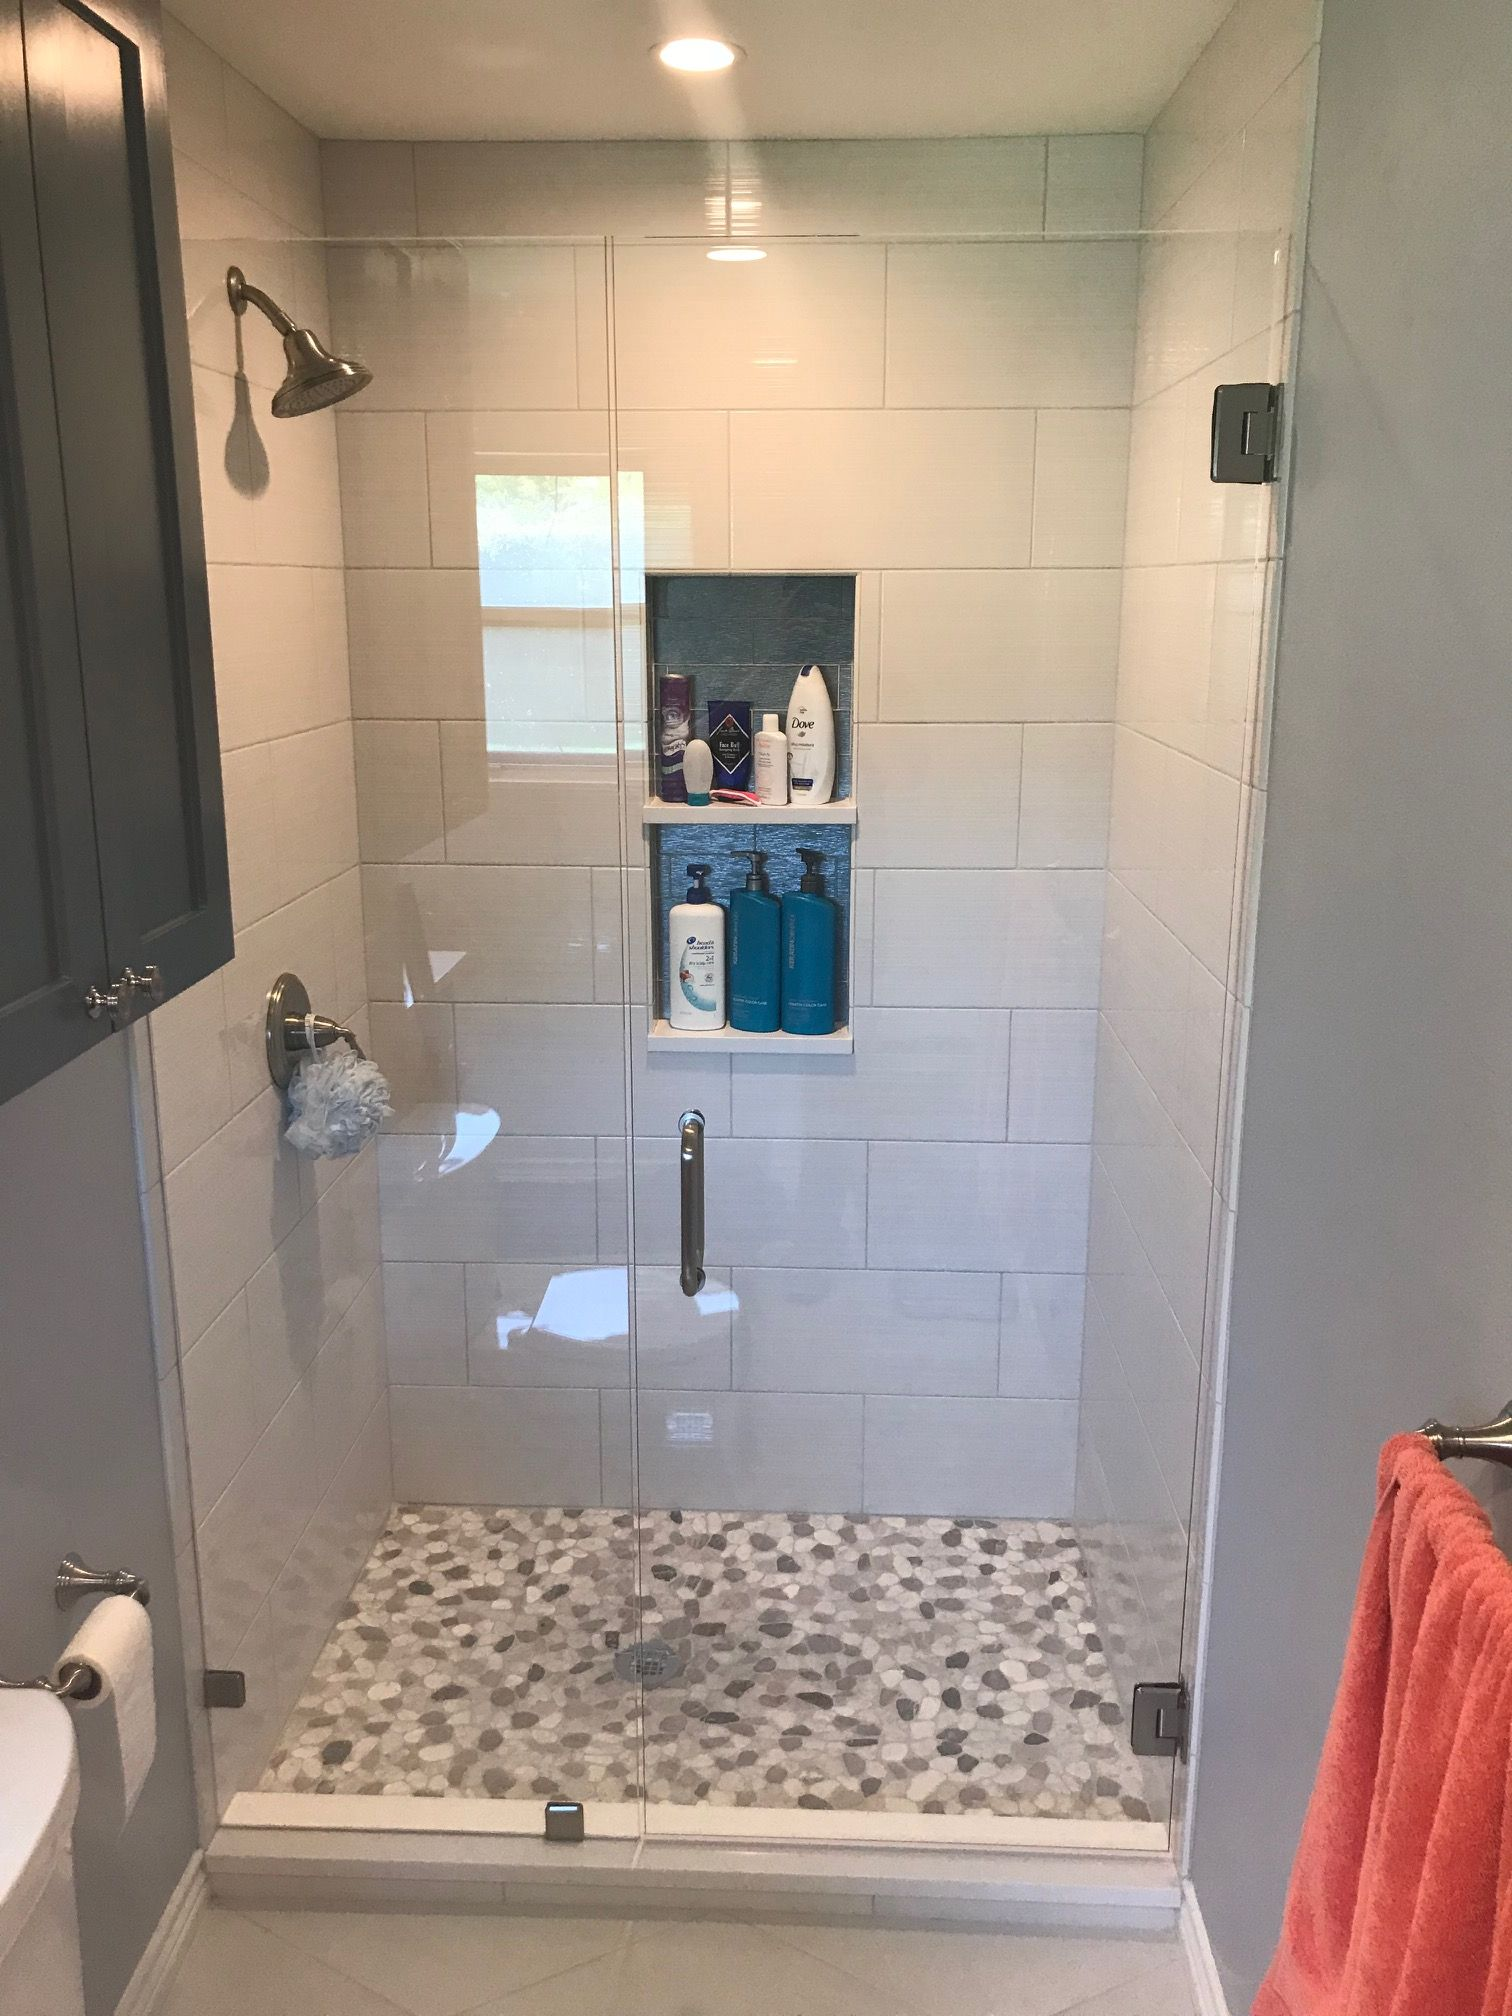 Dallas Bath Gl Inc Frameless Inline Door And Panel With Standard Crl Brushed Nickel Hardware 3 8 Heavy Clear